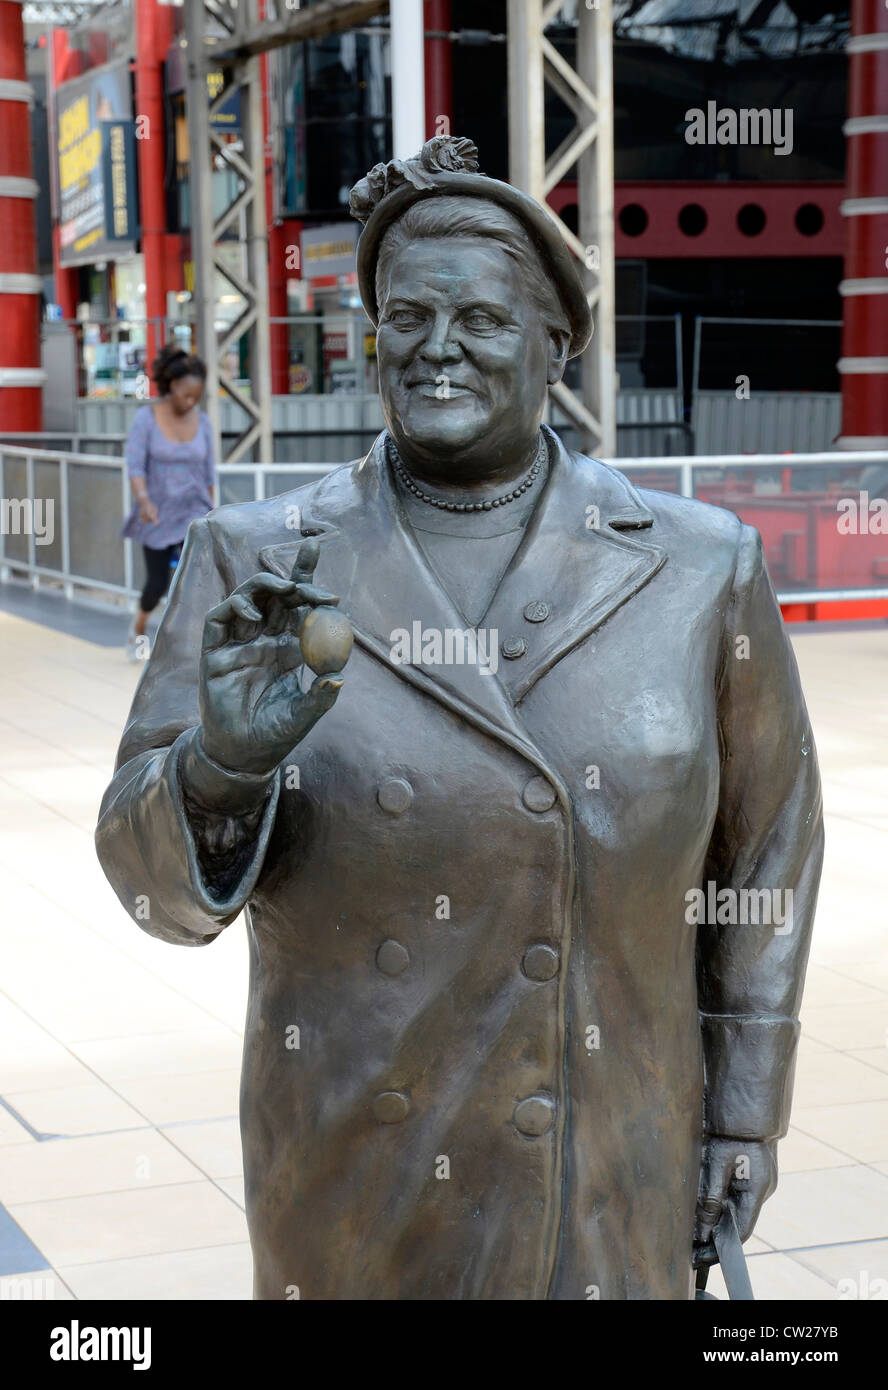 The statue of ' Bessie Braddock '  a famous liverpool politician - Stock Image